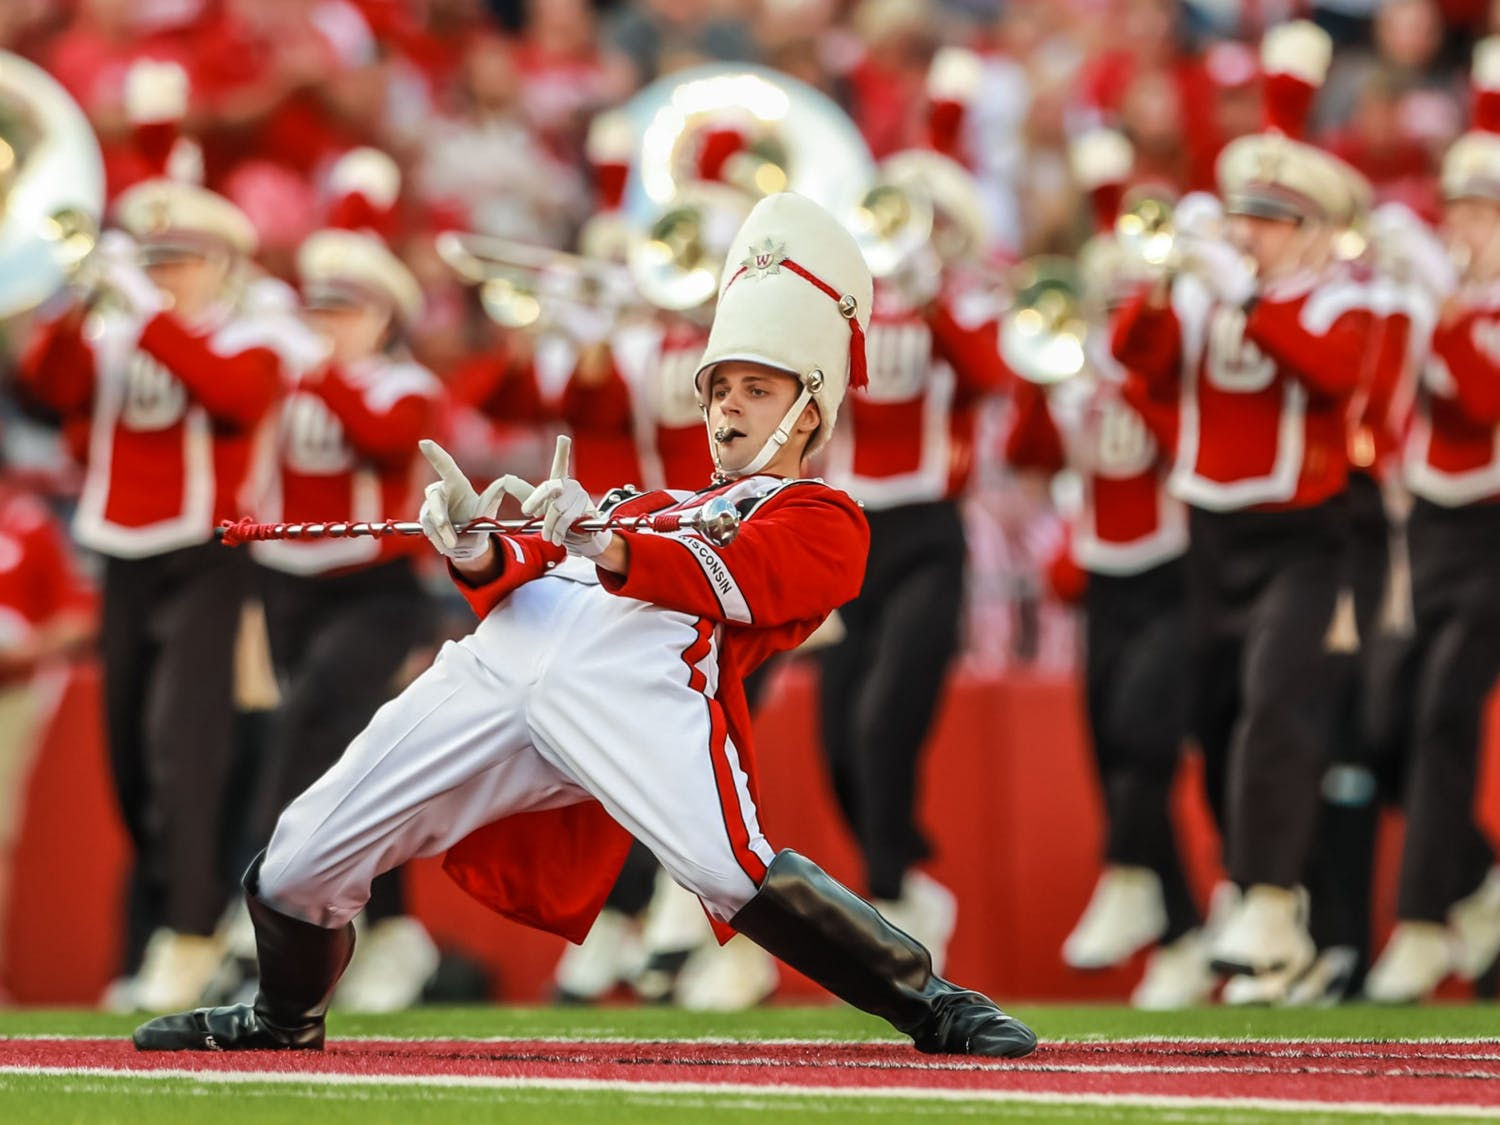 Photo of the UW Marching Band drum major.